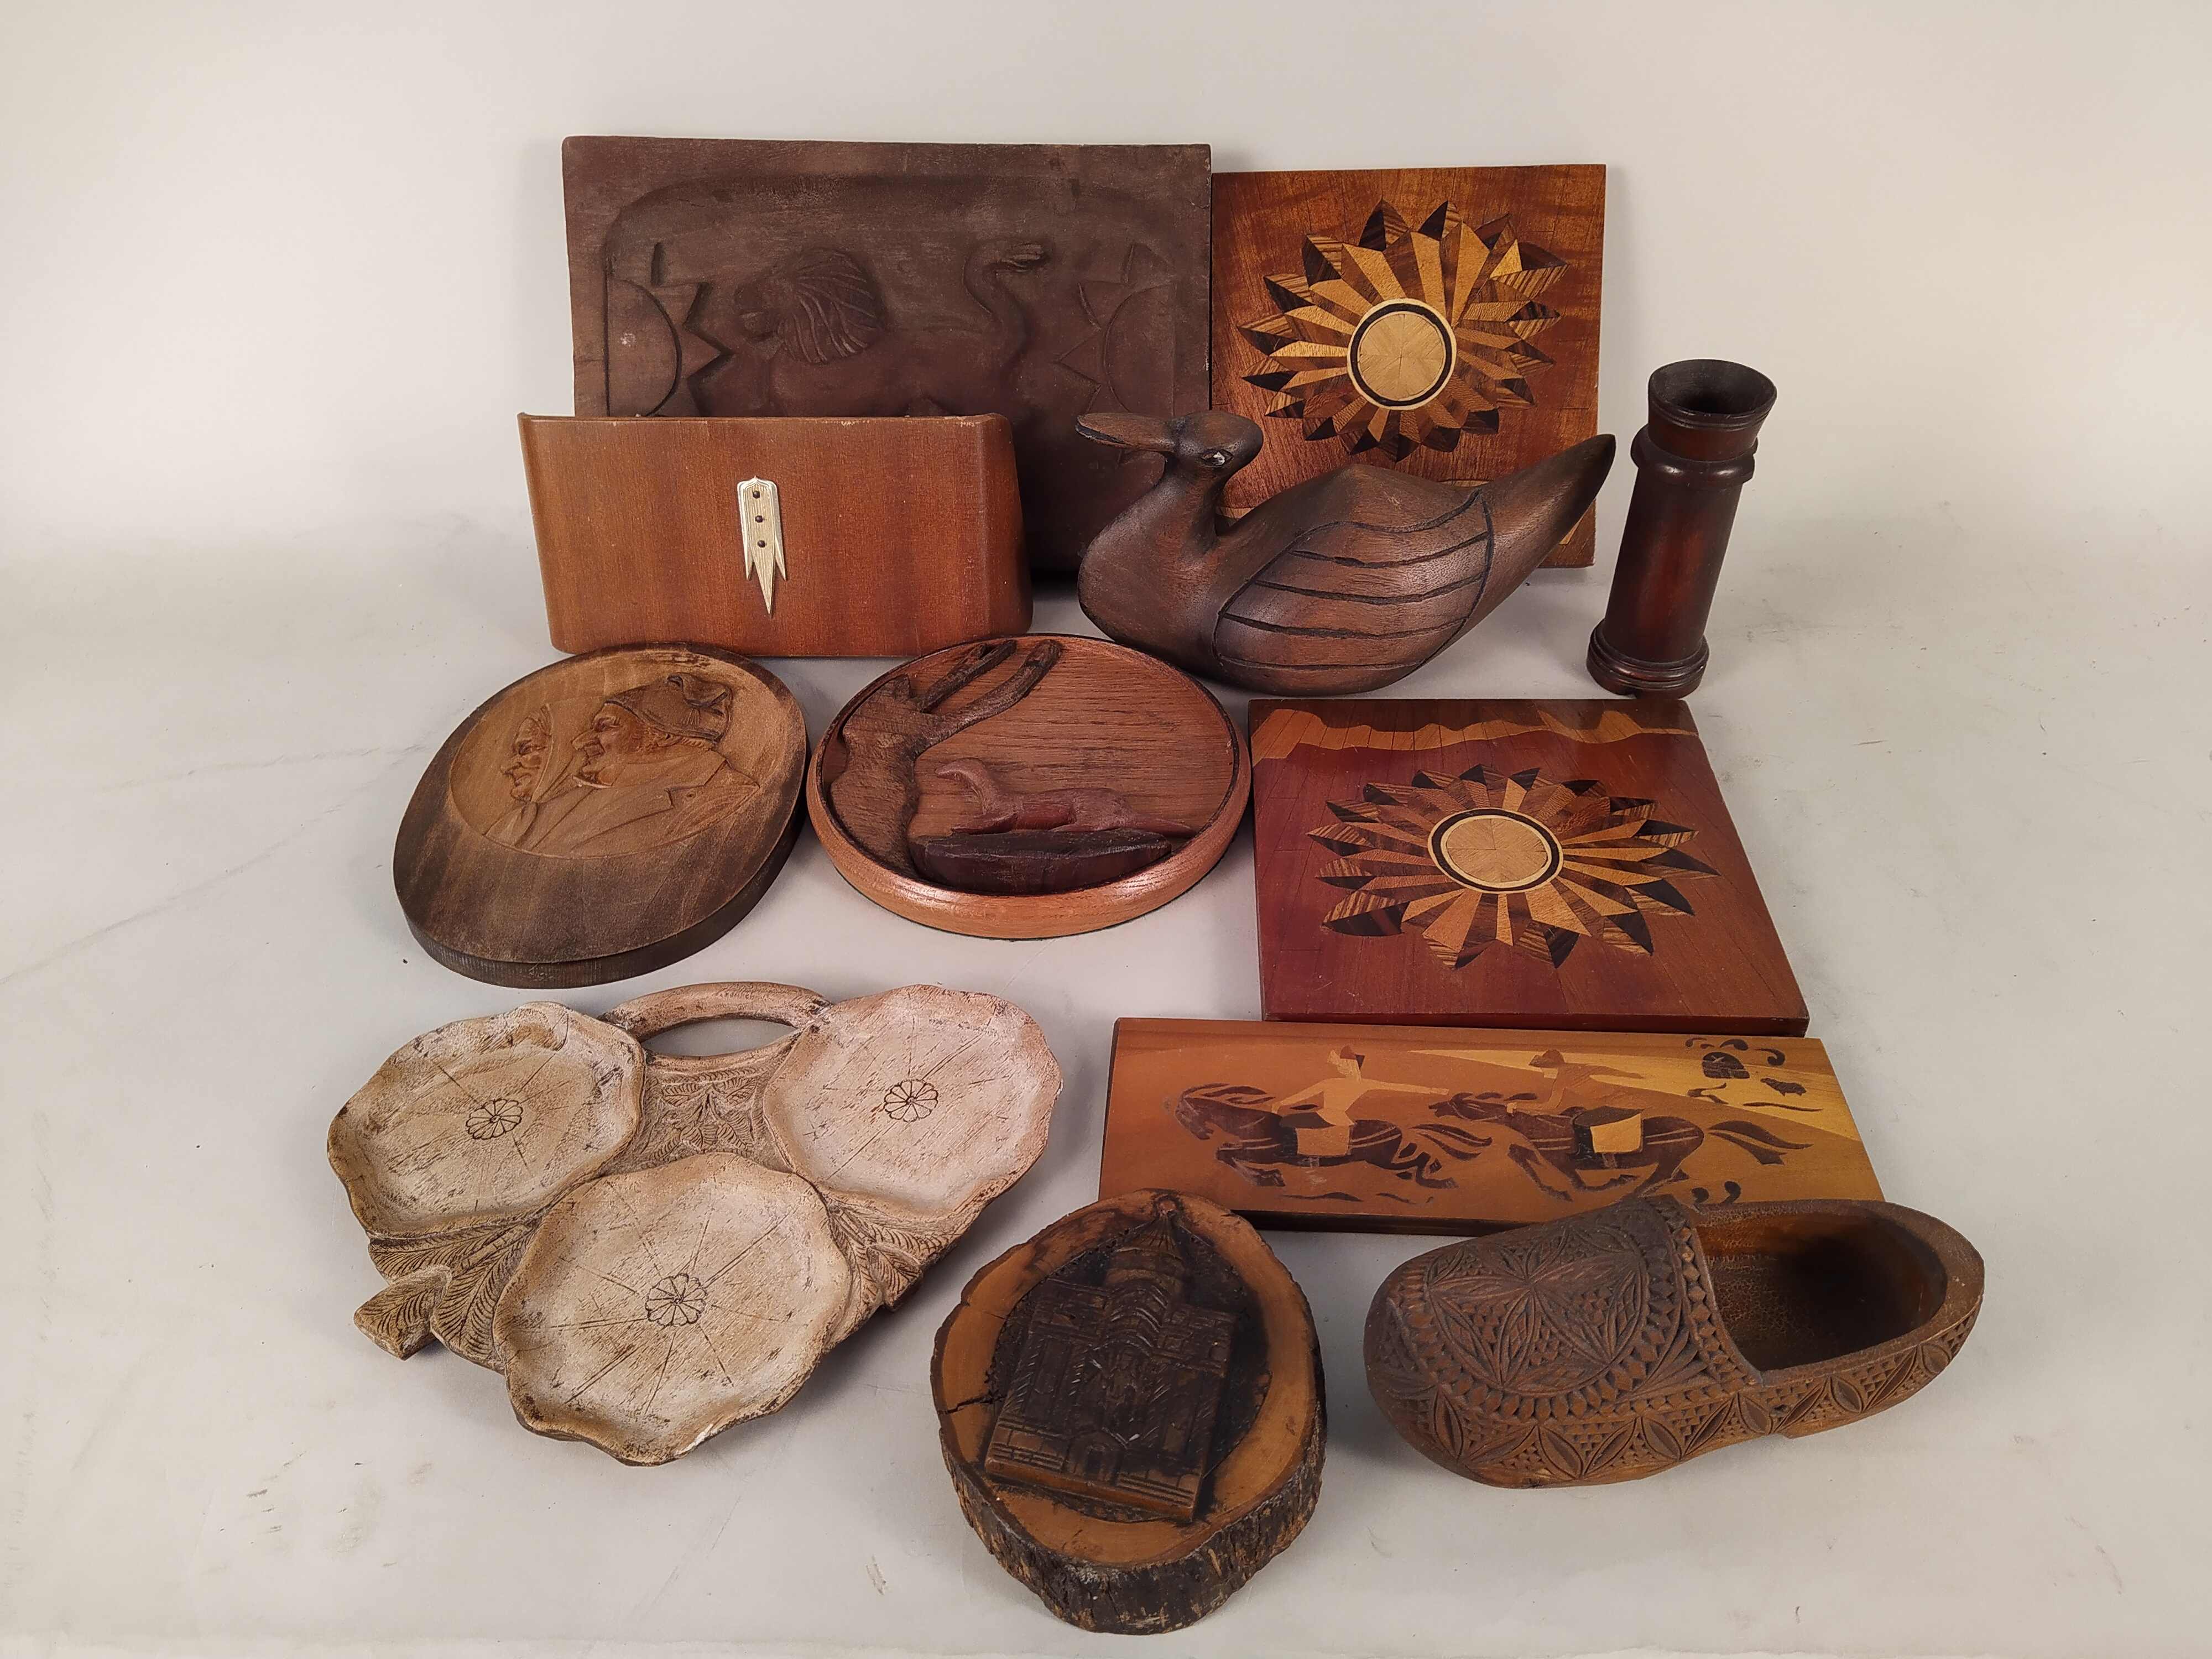 A selection of inlaid and carved wood wares plus two small metal animal door wedges